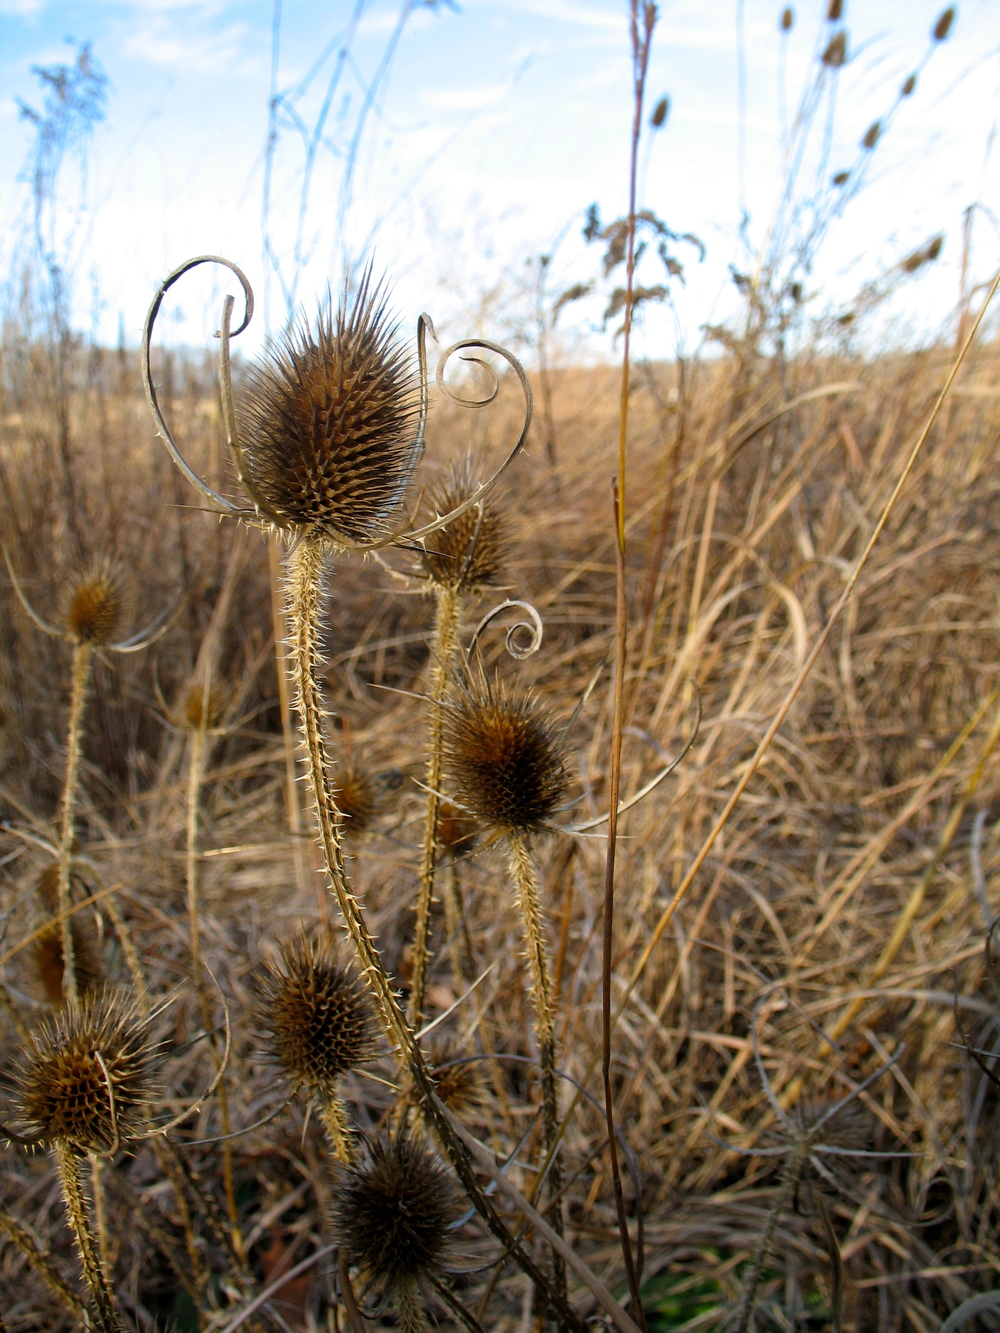 A jubilant crowd of teasels